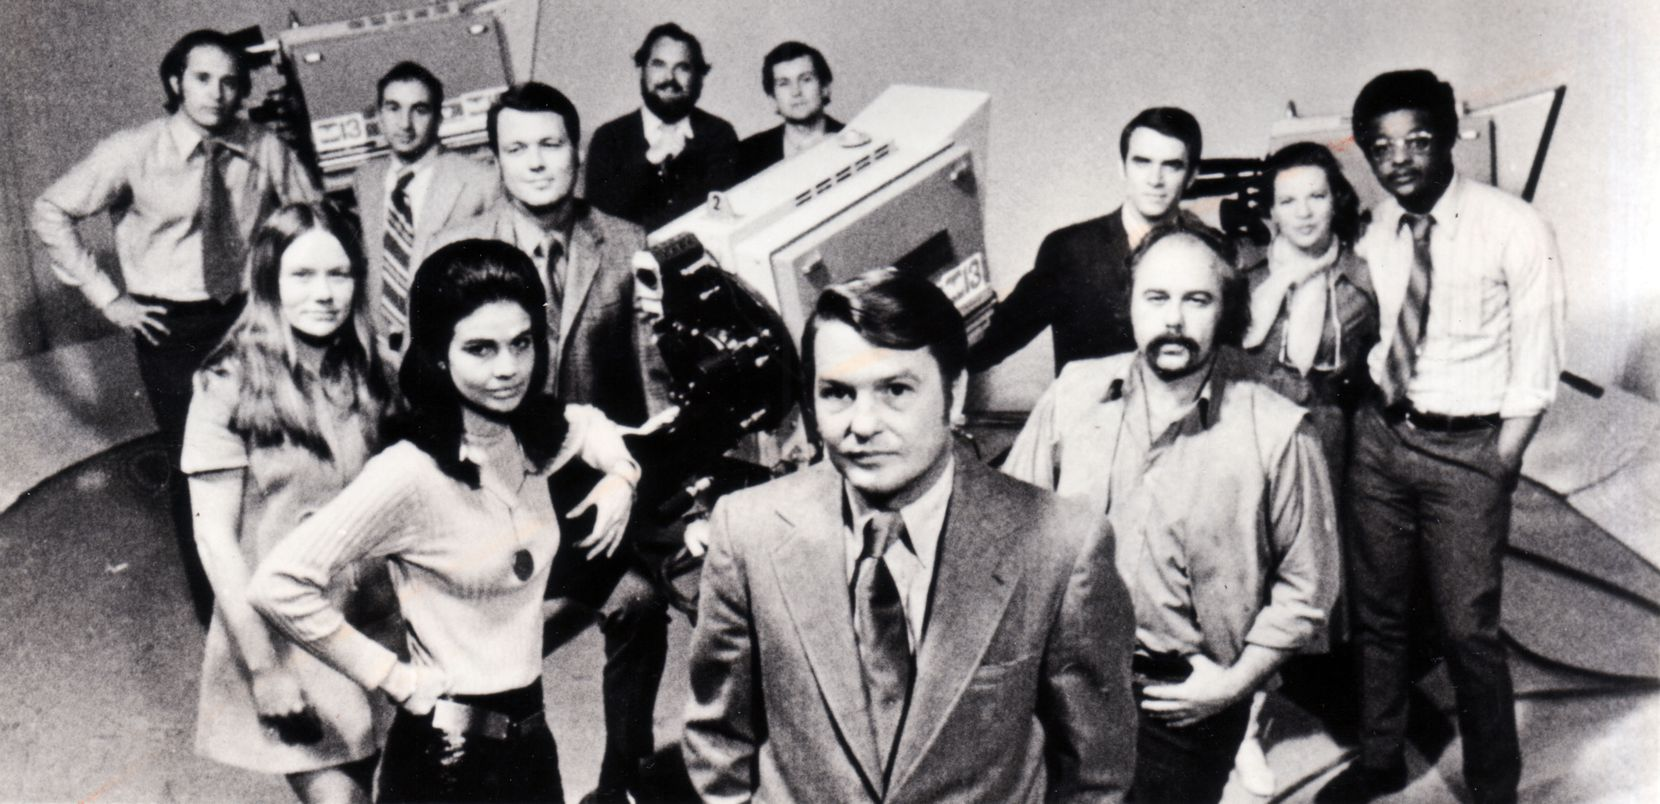 """KERA's award-winning news program """"Newsroom"""" debuted on Feb. 16, 1970, with Jim Lehrer (center) as its editor. Other reporters on the controversial program included Lee Cullum Clark (arm on camera); Bill Porterfield (behind Lehrer); Pat Reed and John Tackett (behind Clark); Darwin Payne, Patsy Swank and Greg Roberson (from left behind Porterfield); and Mike Ritchey, Harlan Cohen, Ron Devillier and Max Woodfin (from left at rear)."""